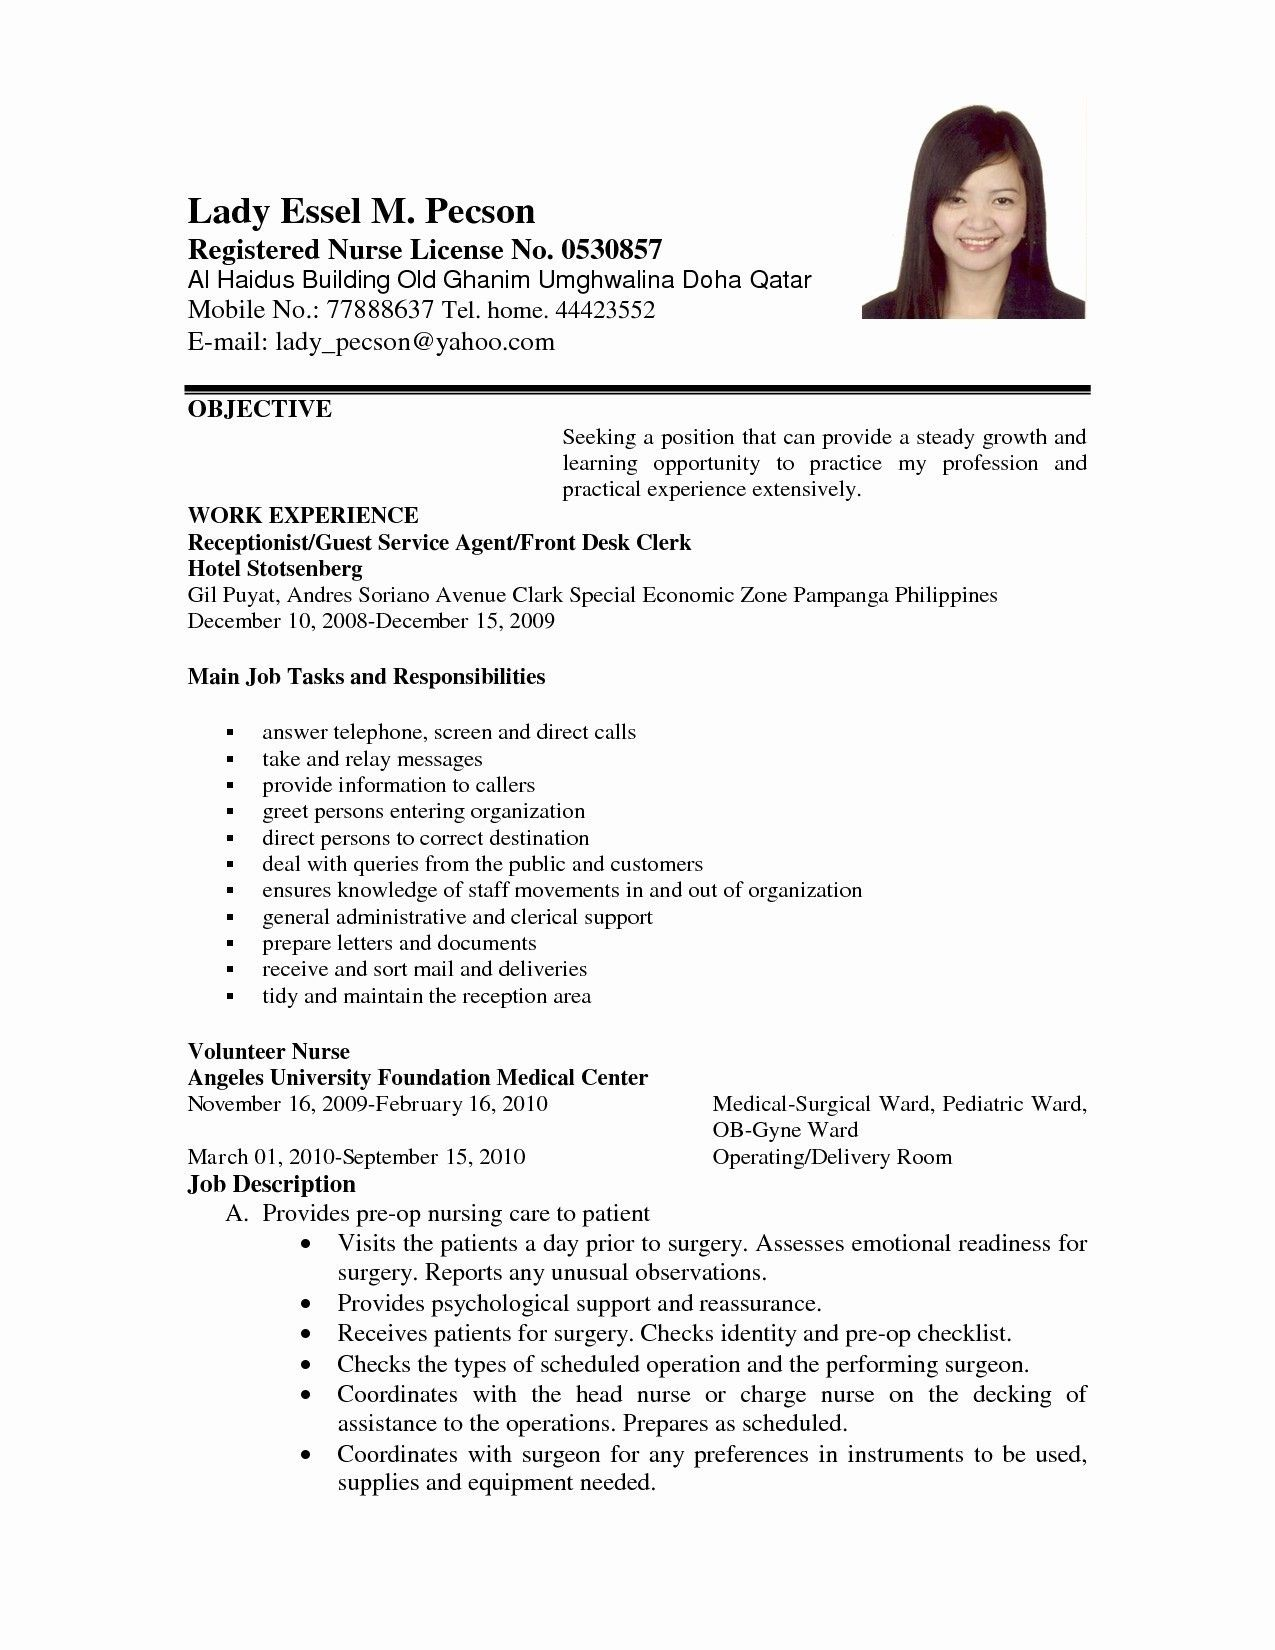 Writing Medical Resistant Resume with Samples (With images